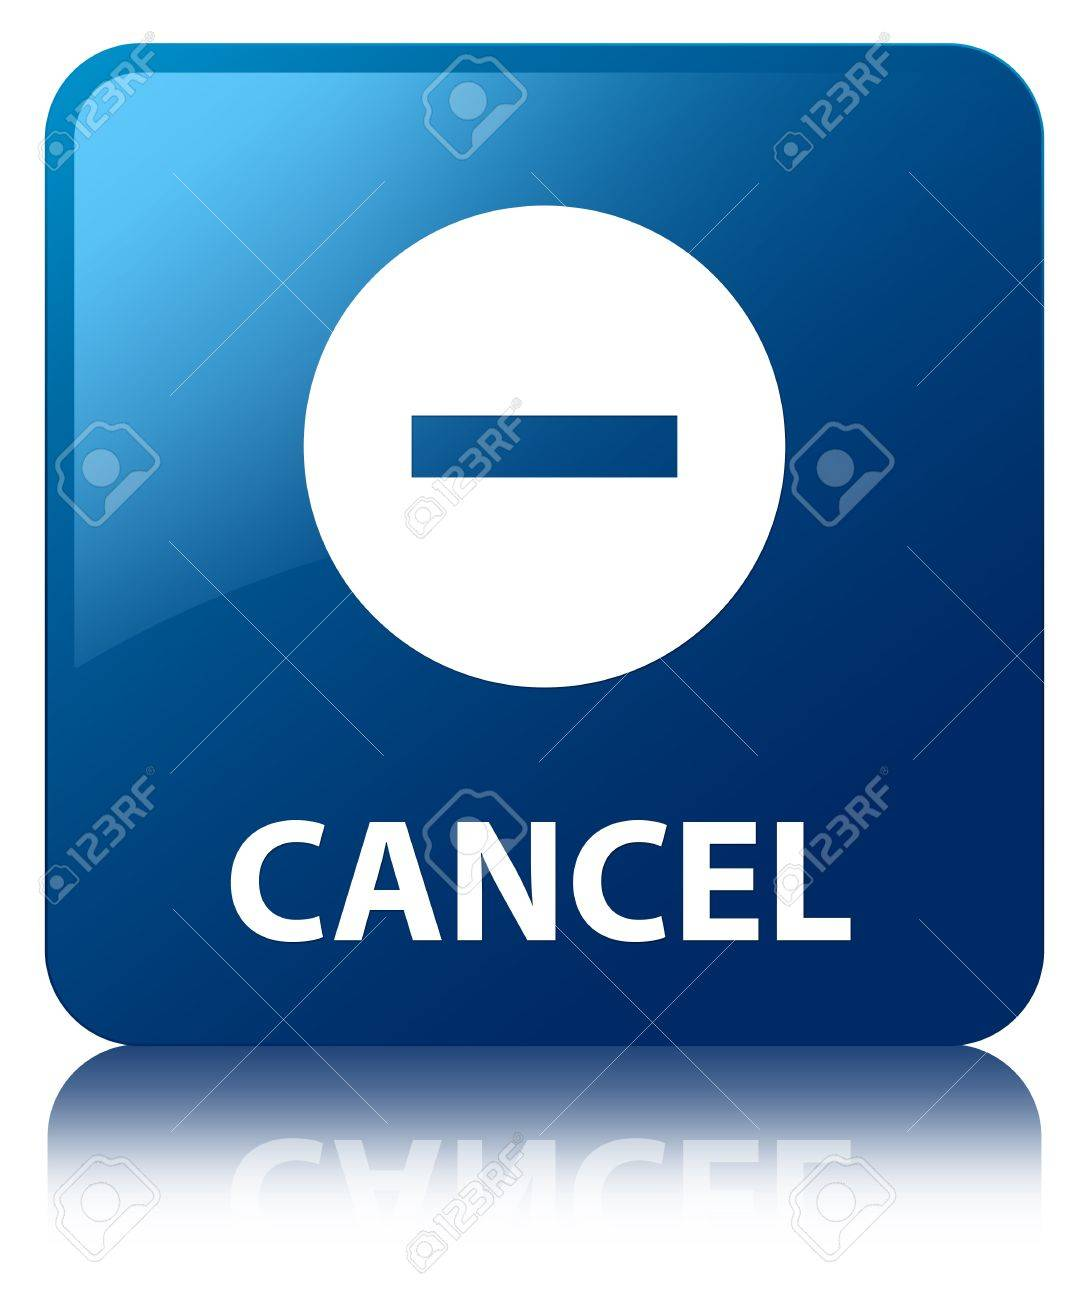 Cancel glossy blue reflected square button Stock Photo - 18763327